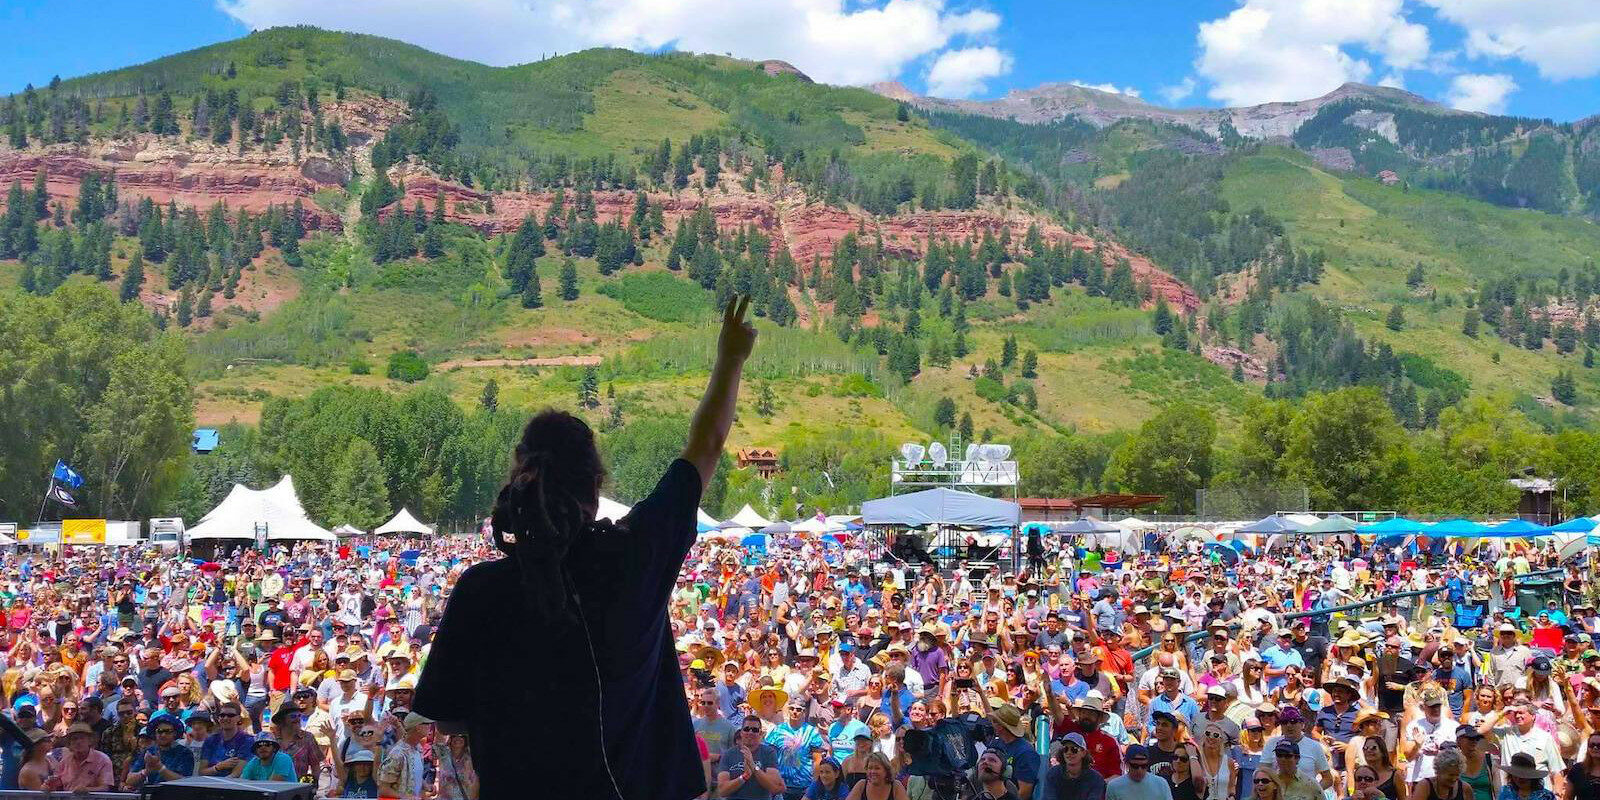 Image of the crowd view from stage at RIDE Festival in Telluride, Colorado